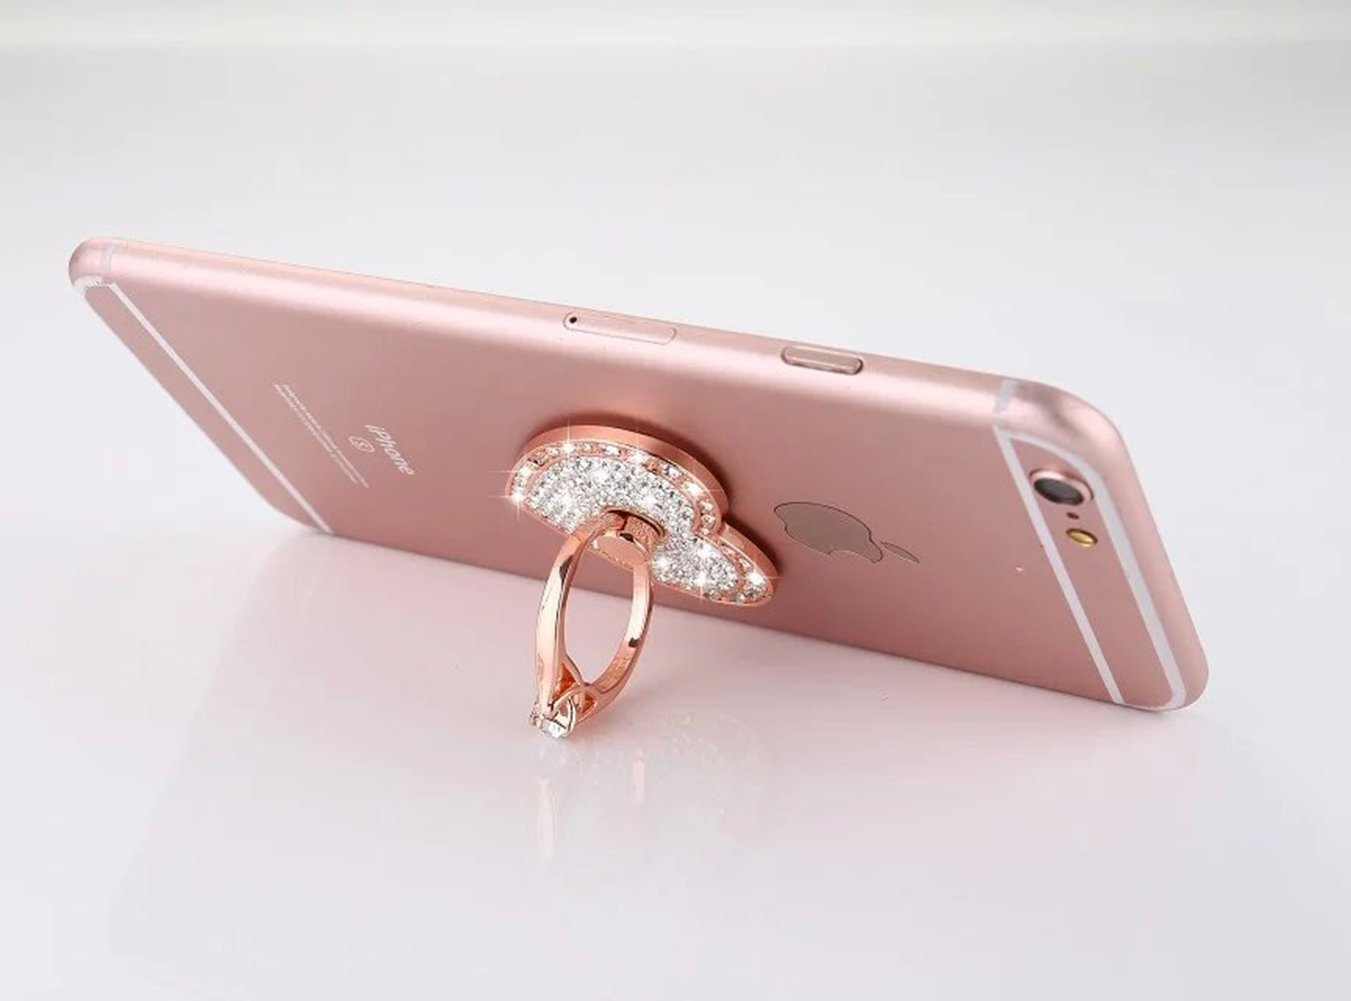 Universal Phone Ring Bracket holder ,UCLL Love Heart Diamond Shape Finger Grip Stand Holder Ring Car Mount Phone Ring Grip Smartphone Ring stent Tablet Rose Gold by UCLL (Image #6)